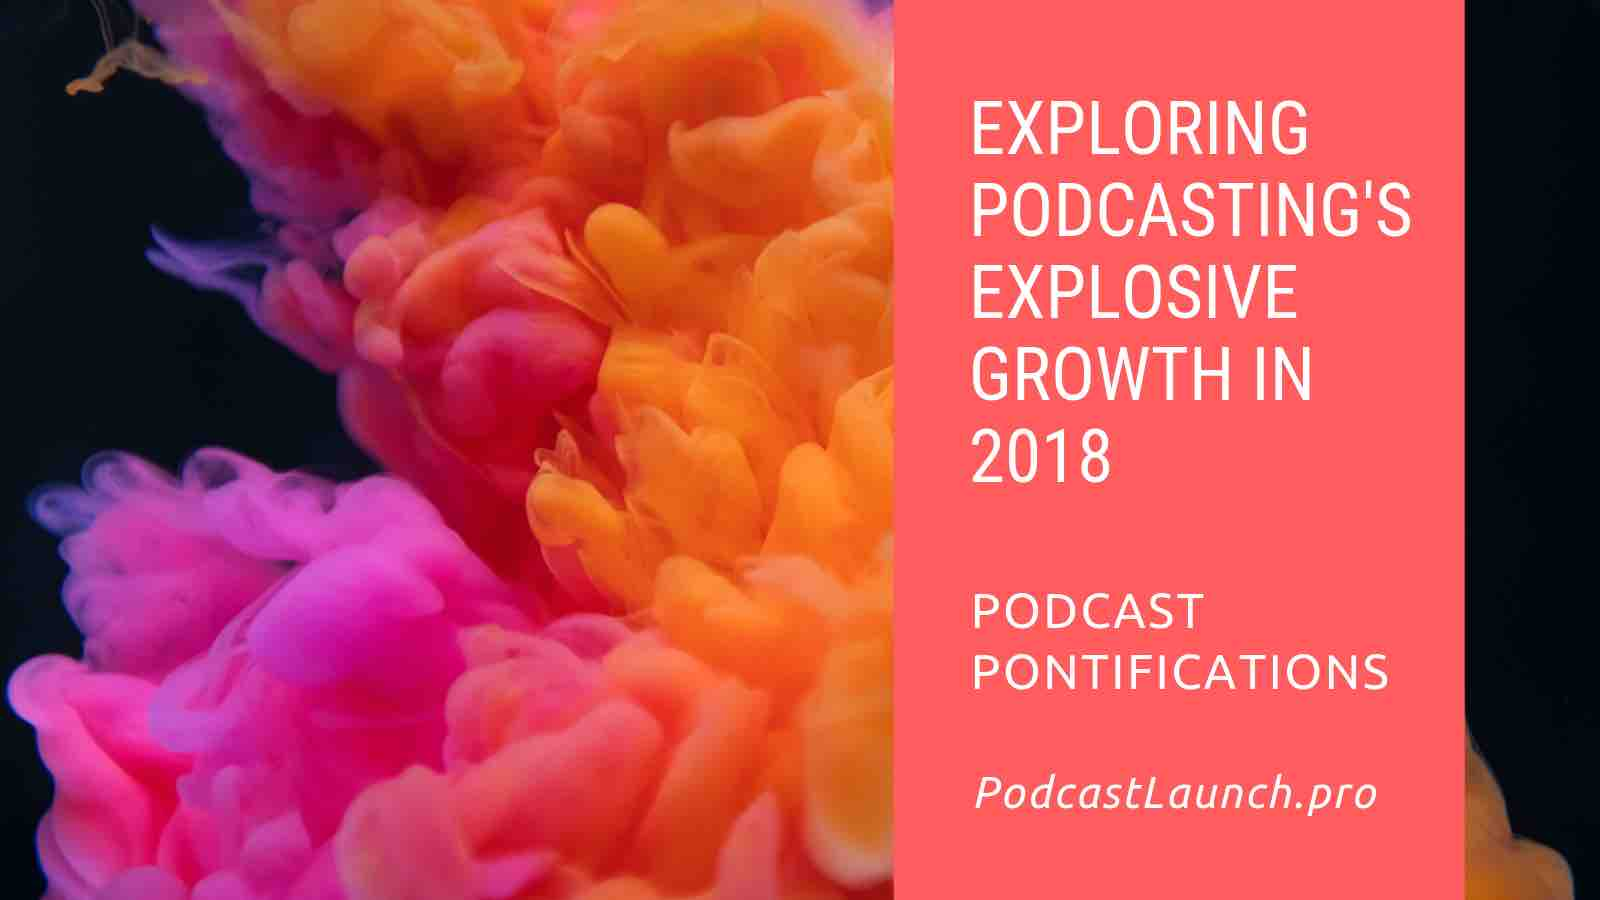 Exploring Podcasting's Explosive Growth In 2018